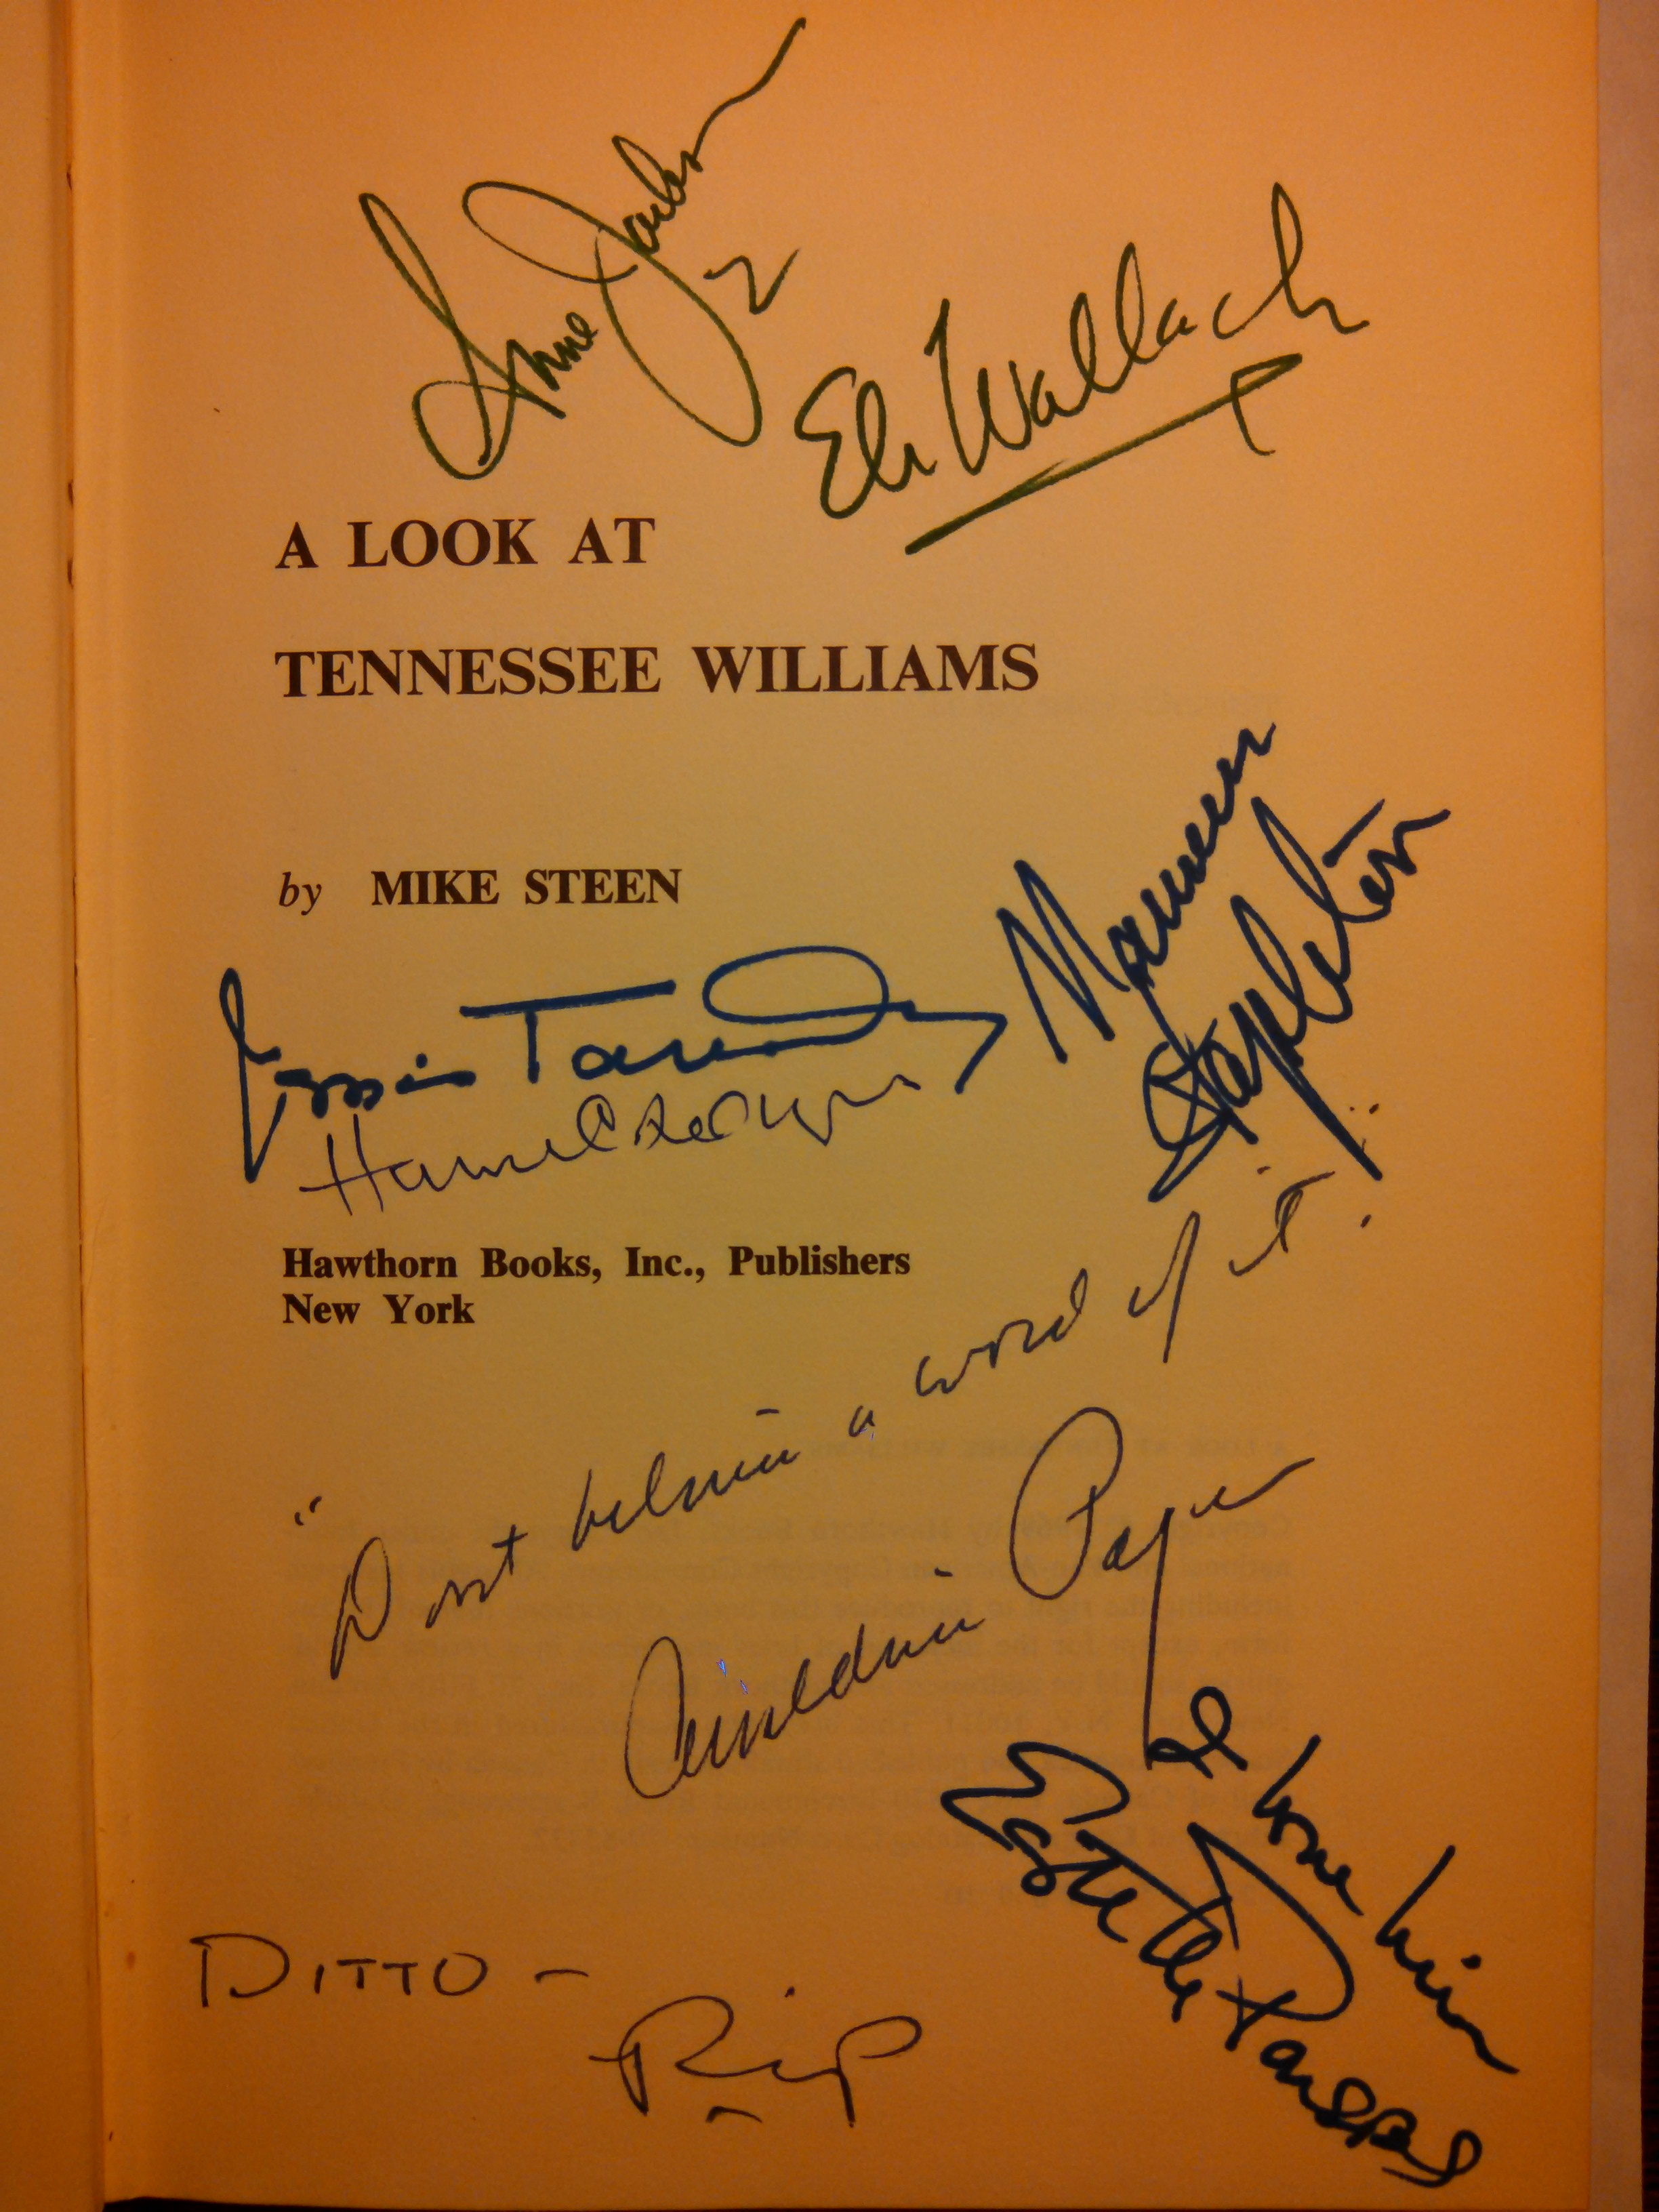 My newest acquisition: A Look at Tennessee Williams